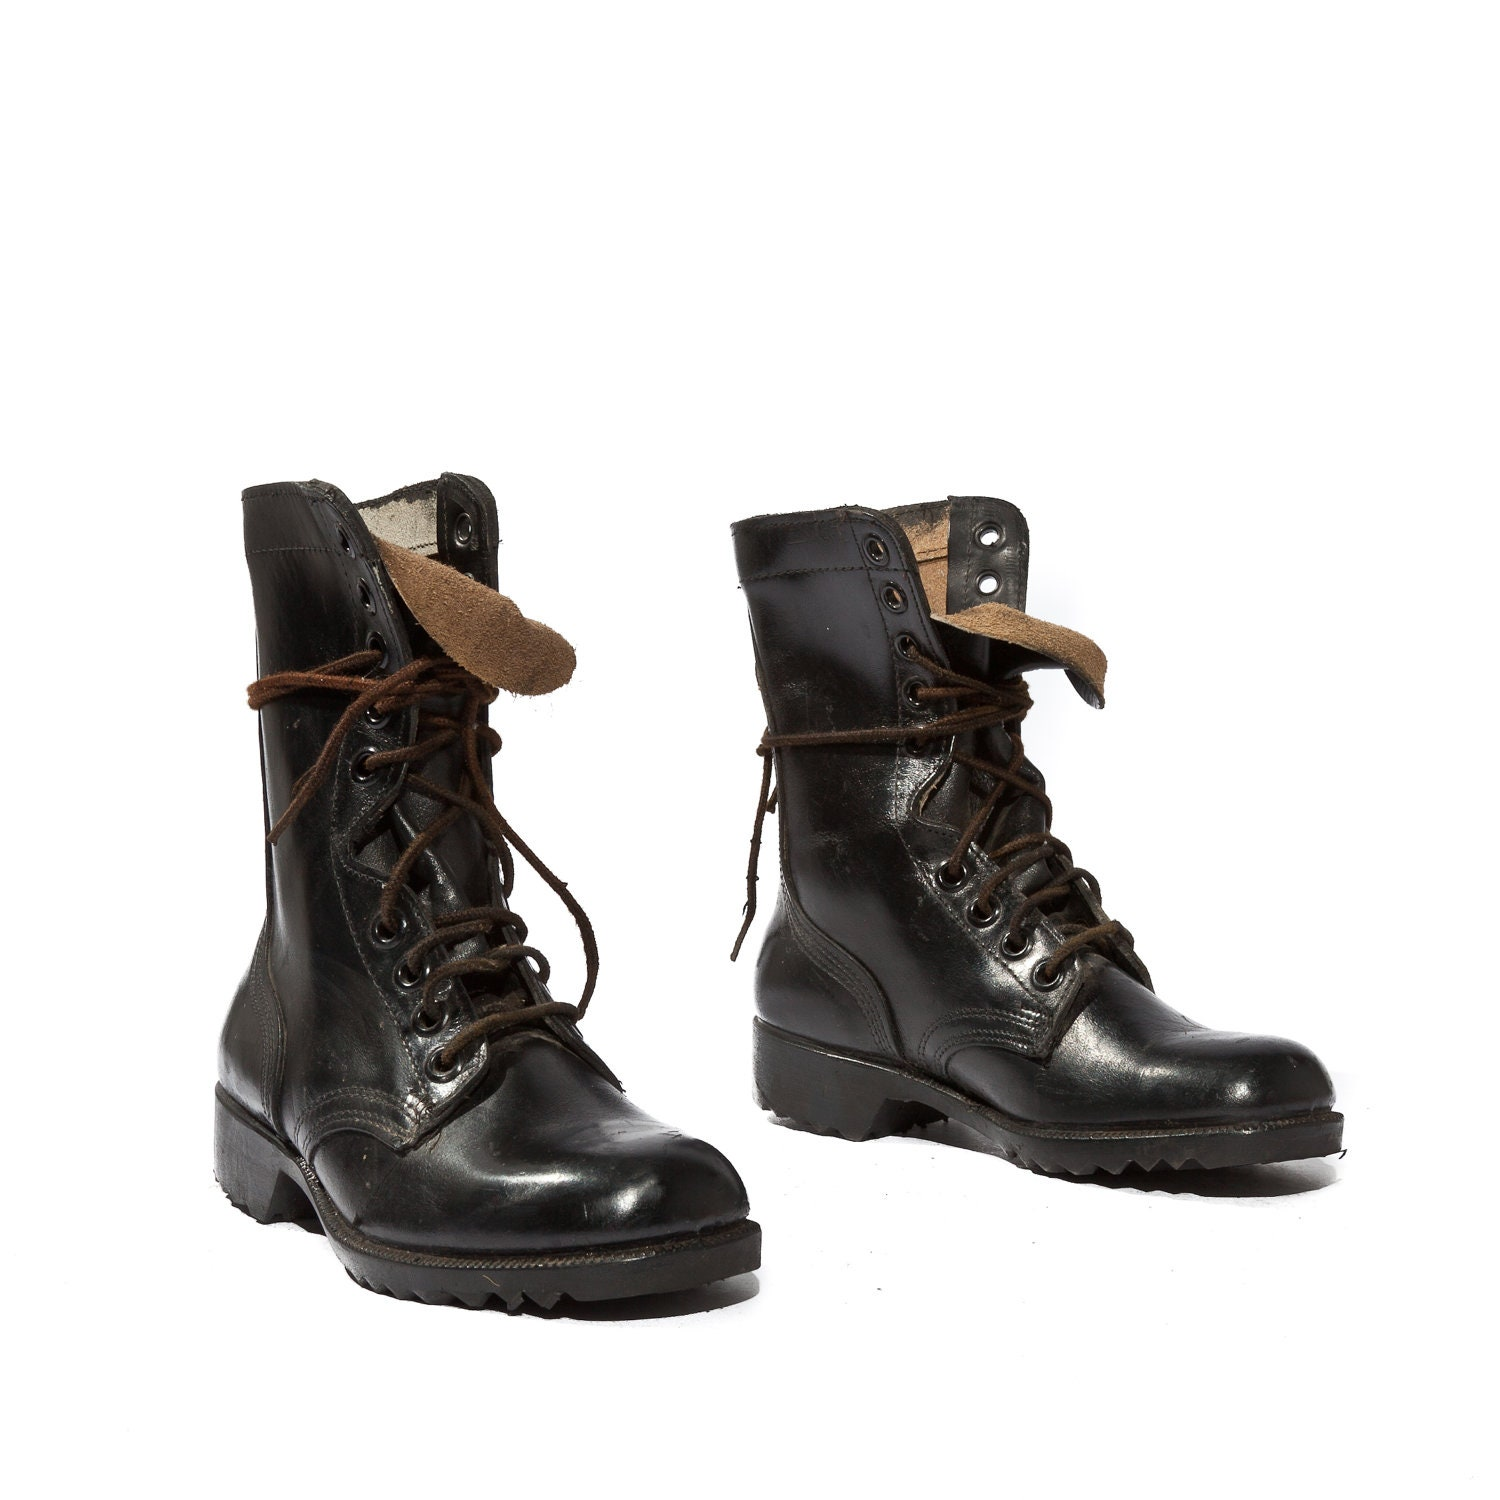 1981 Standard Issue Combat Boots Jet Black Leather Military